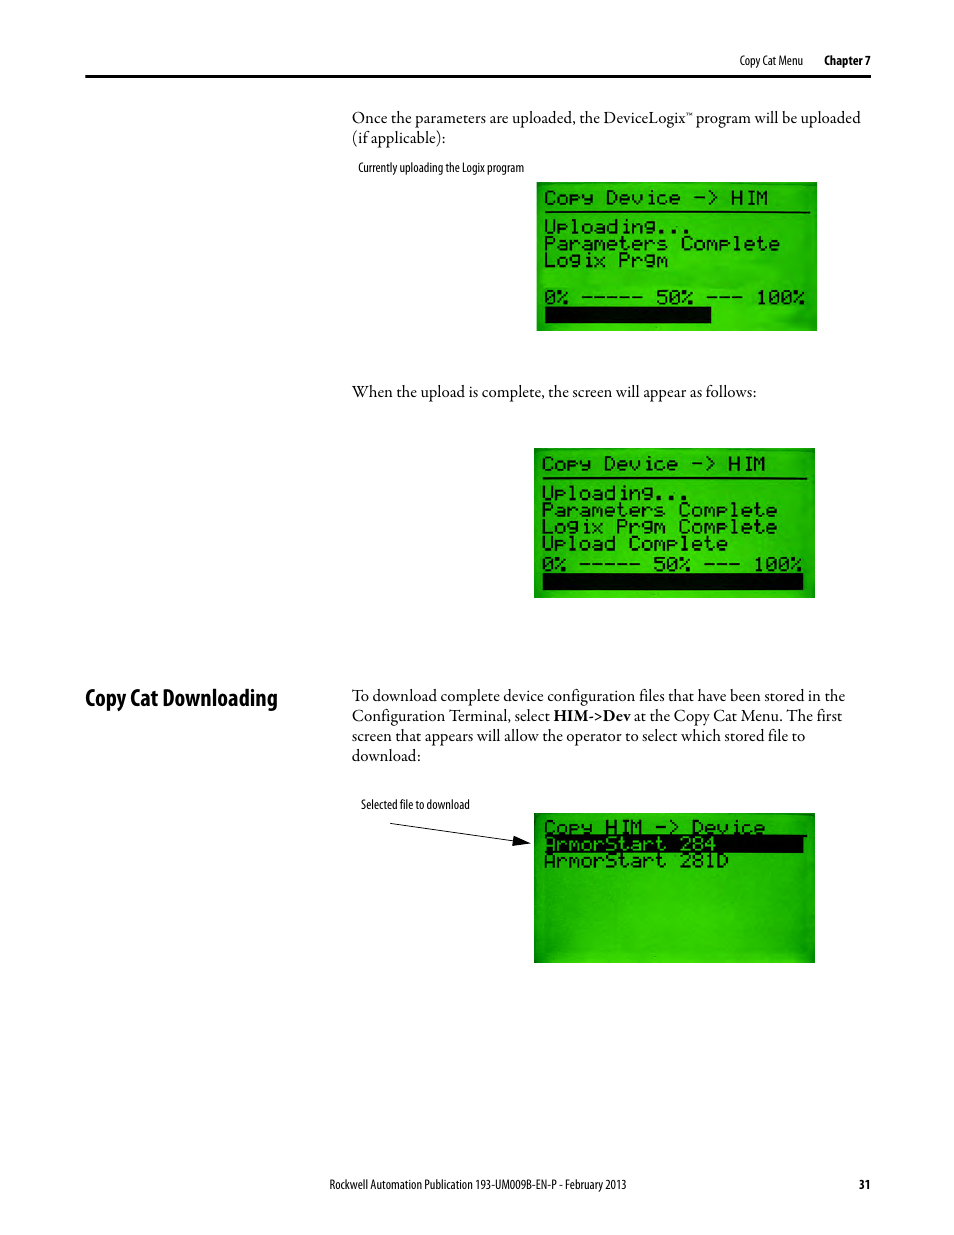 Copy cat downloading | Rockwell Automation 193-DNCT